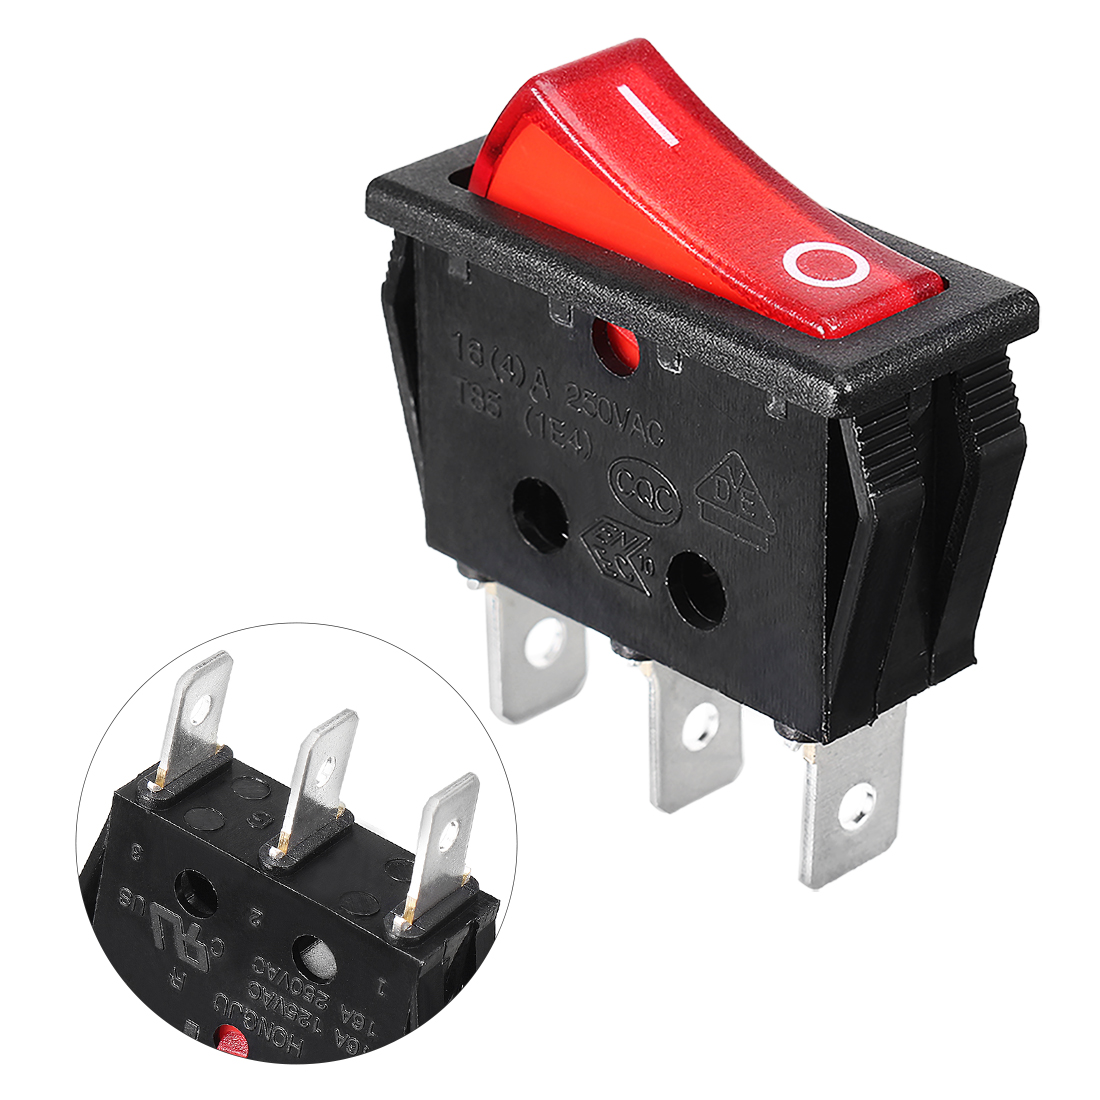 Red Illuminated Light On/Off SPST Boat Rocker Switch 10A/250V 15A/125V AC